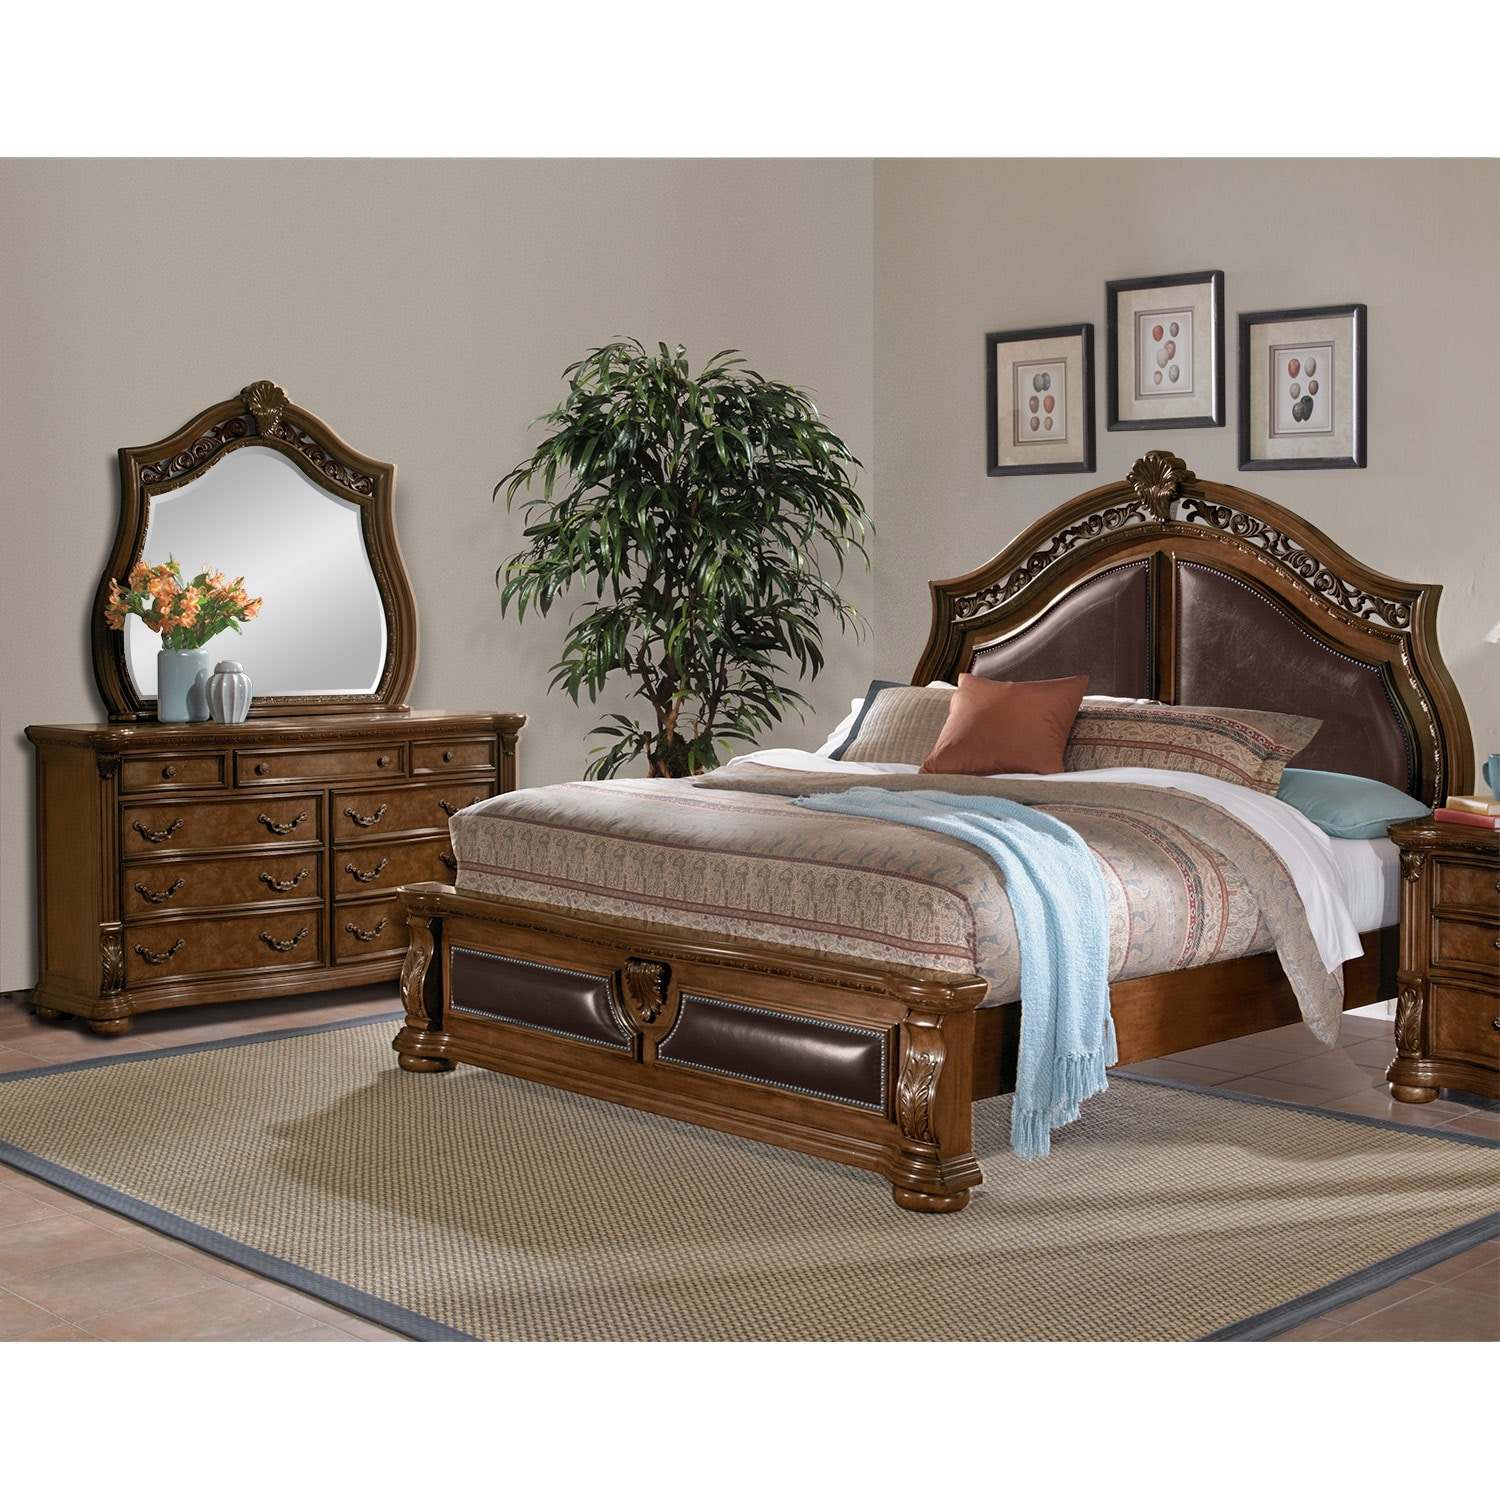 American Bedding And Furniture Jacksonville Fl: Morocco 5-Piece King Upholstered Bedroom Set